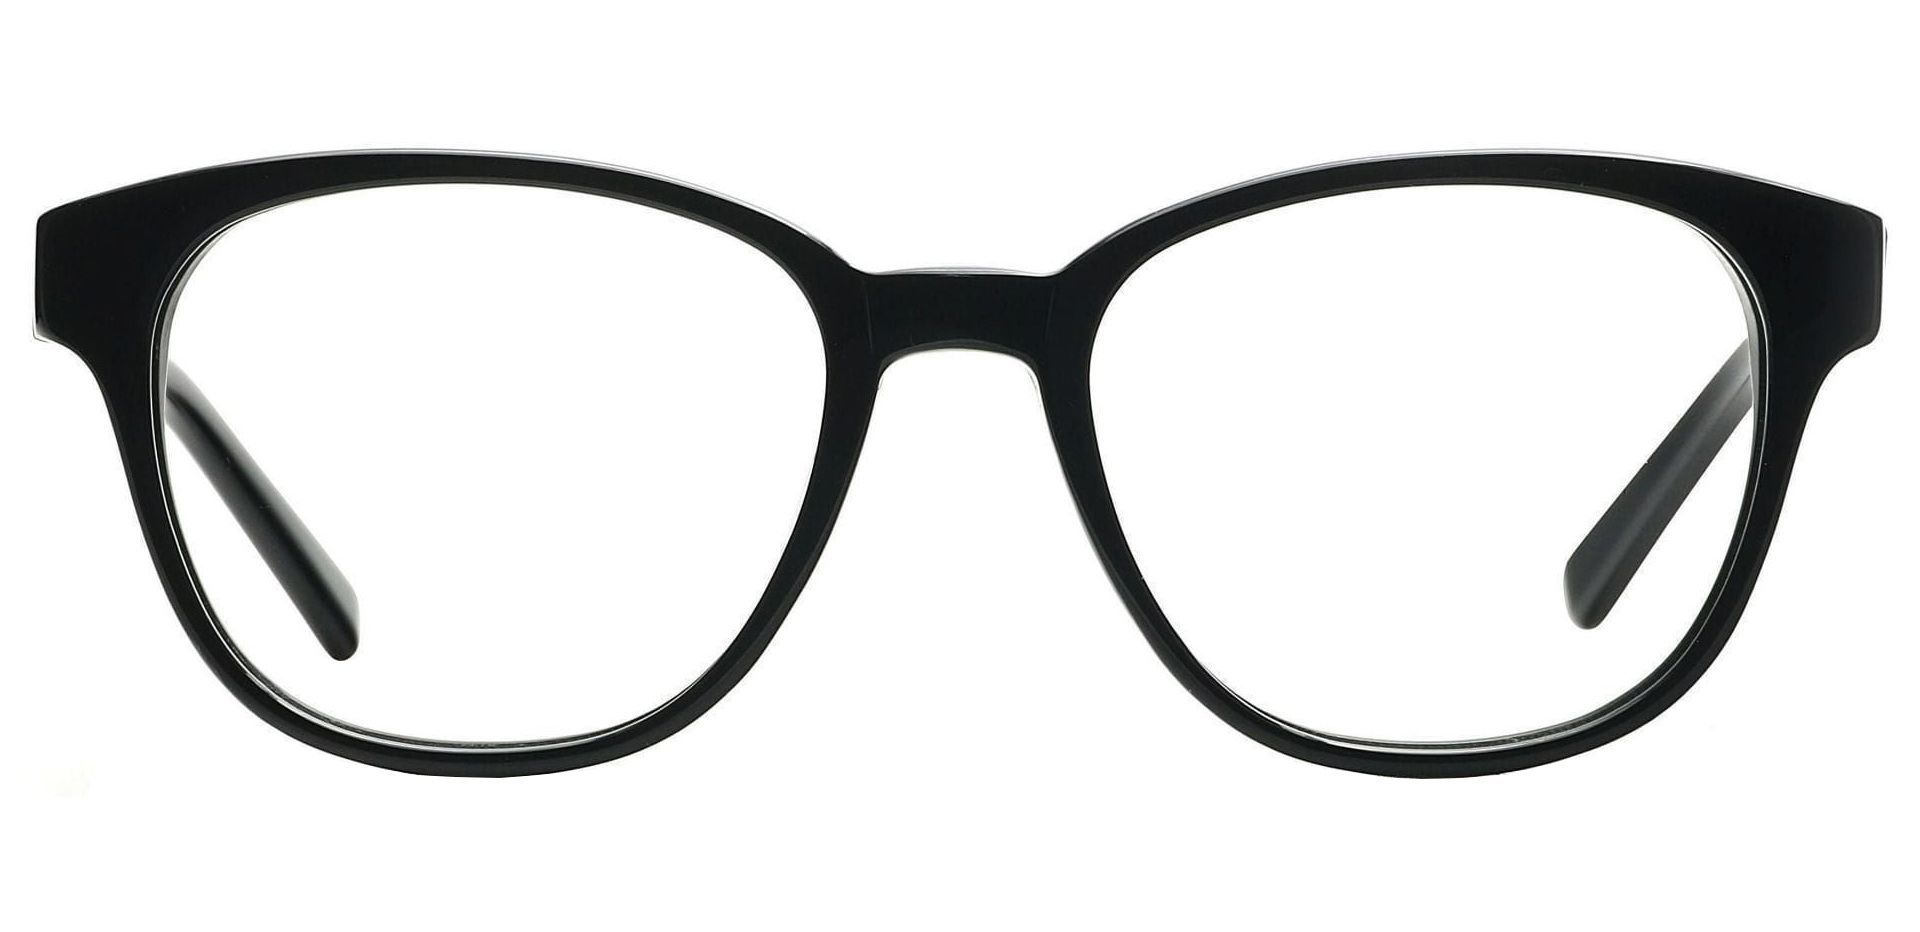 Elan Classic Square Non-Rx Glasses - Black